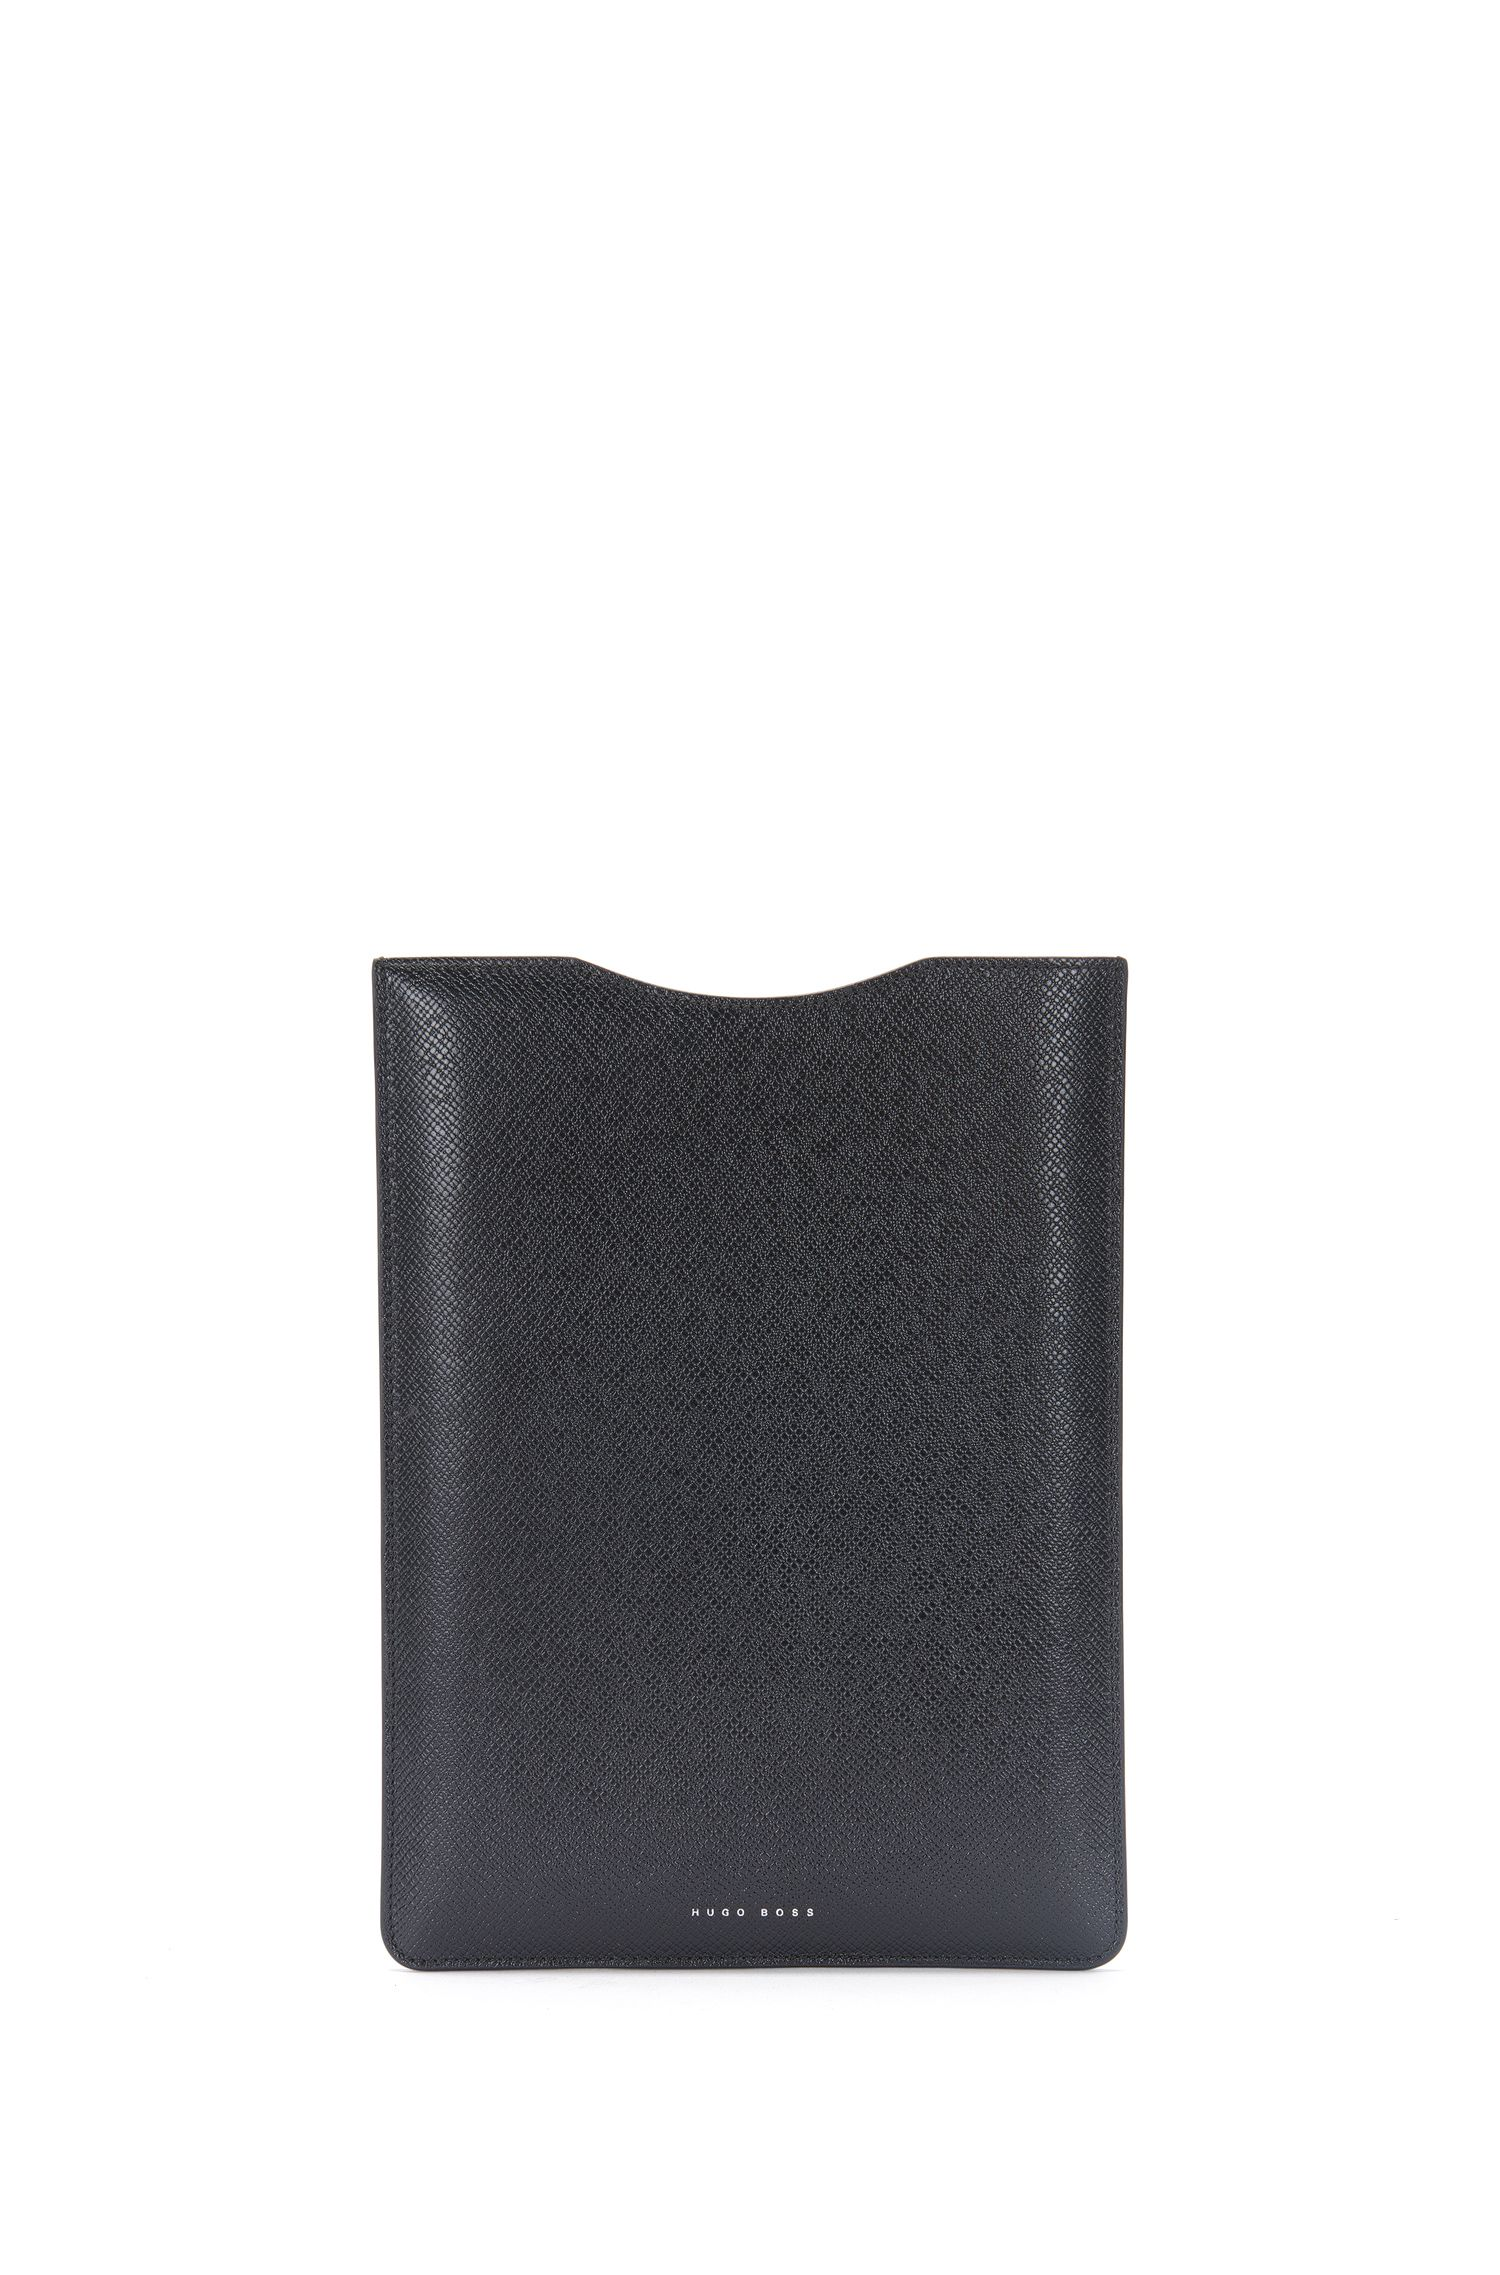 Leather Embossed Tablet Sleeve | Signature Tablet